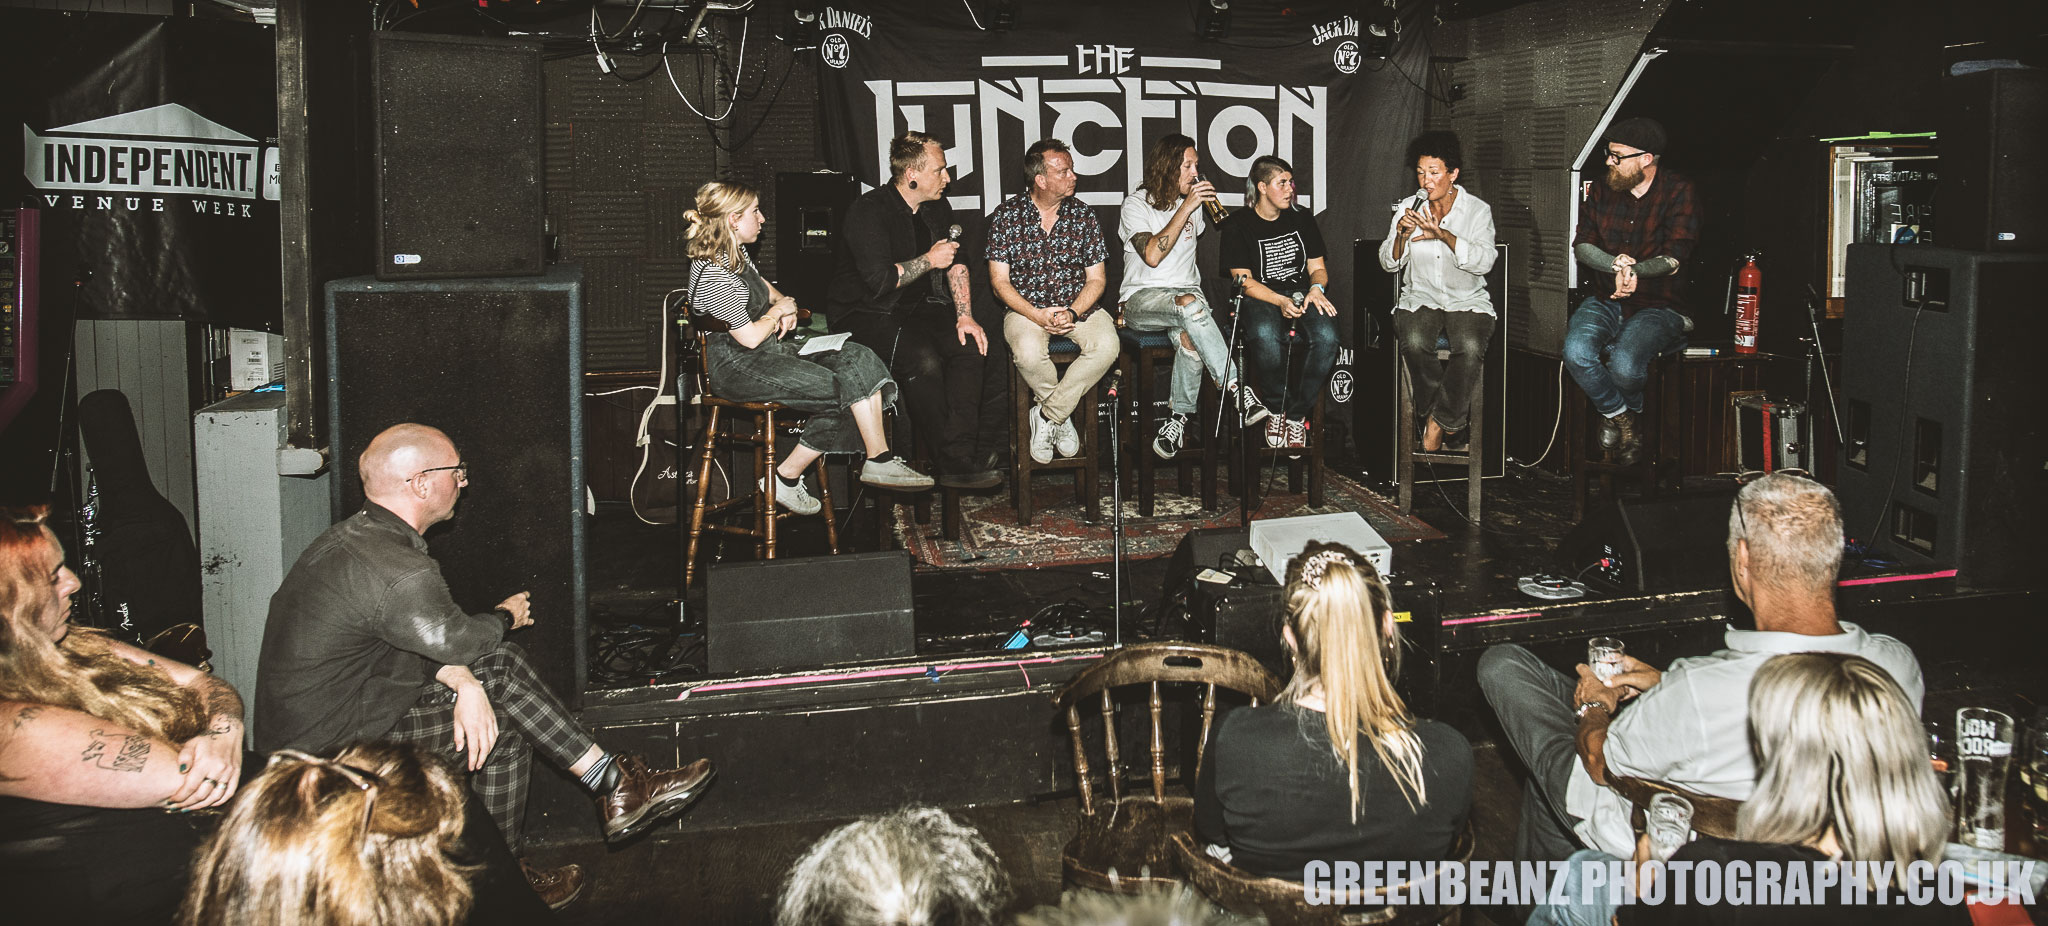 MVT Fightback Plymouth Panel discussion about the importance of grass roots venues at The Junction 18/09/19